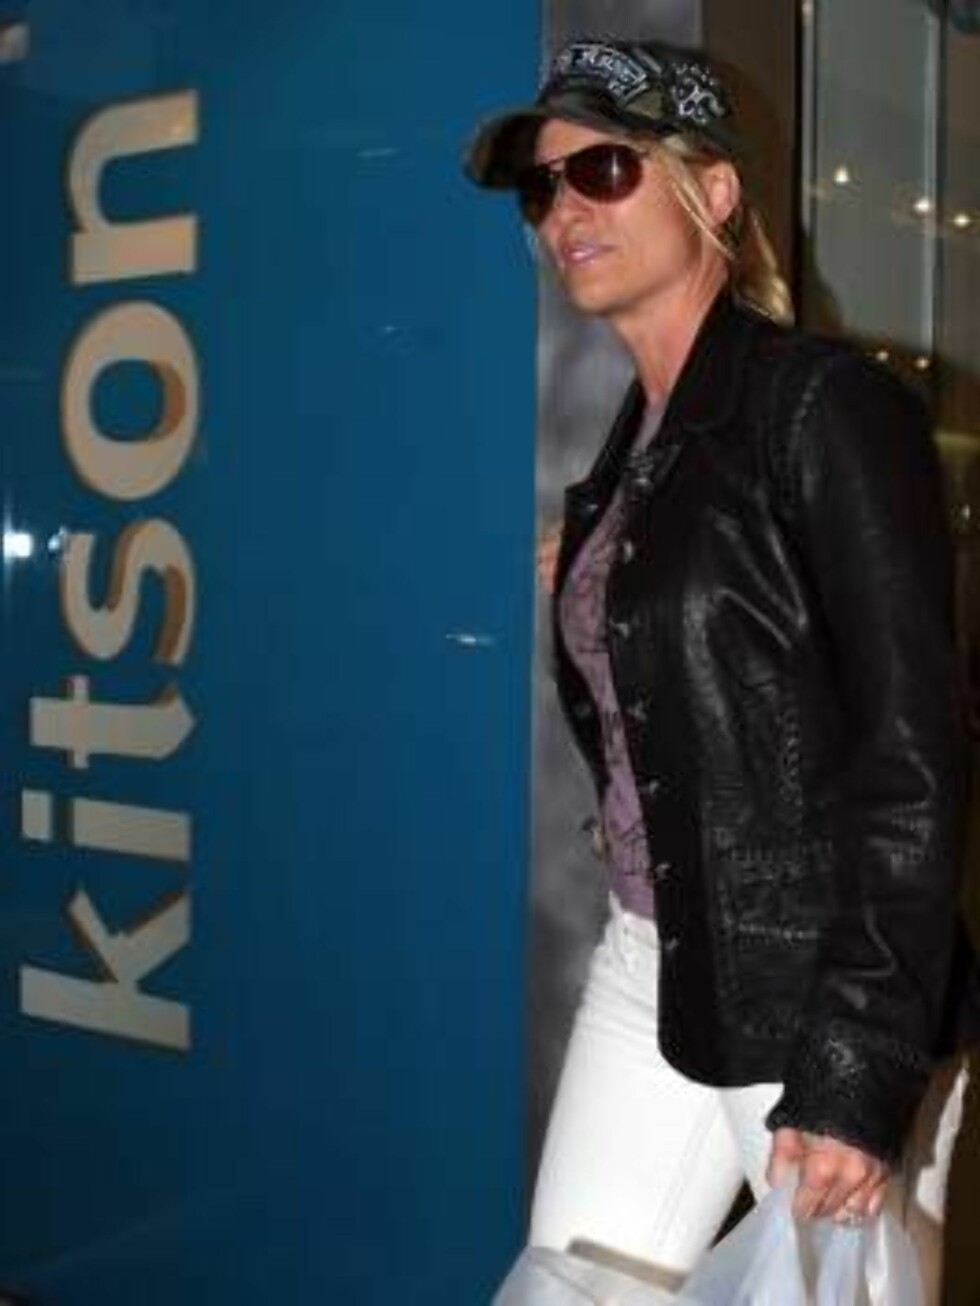 Nicolette Sheridan shopping at Kitson store in West Hollywood sporting her engagement ring. March 16, 2006 X17agency EXCLUSIVE / ALL OVER PRESS Foto: All Over Press